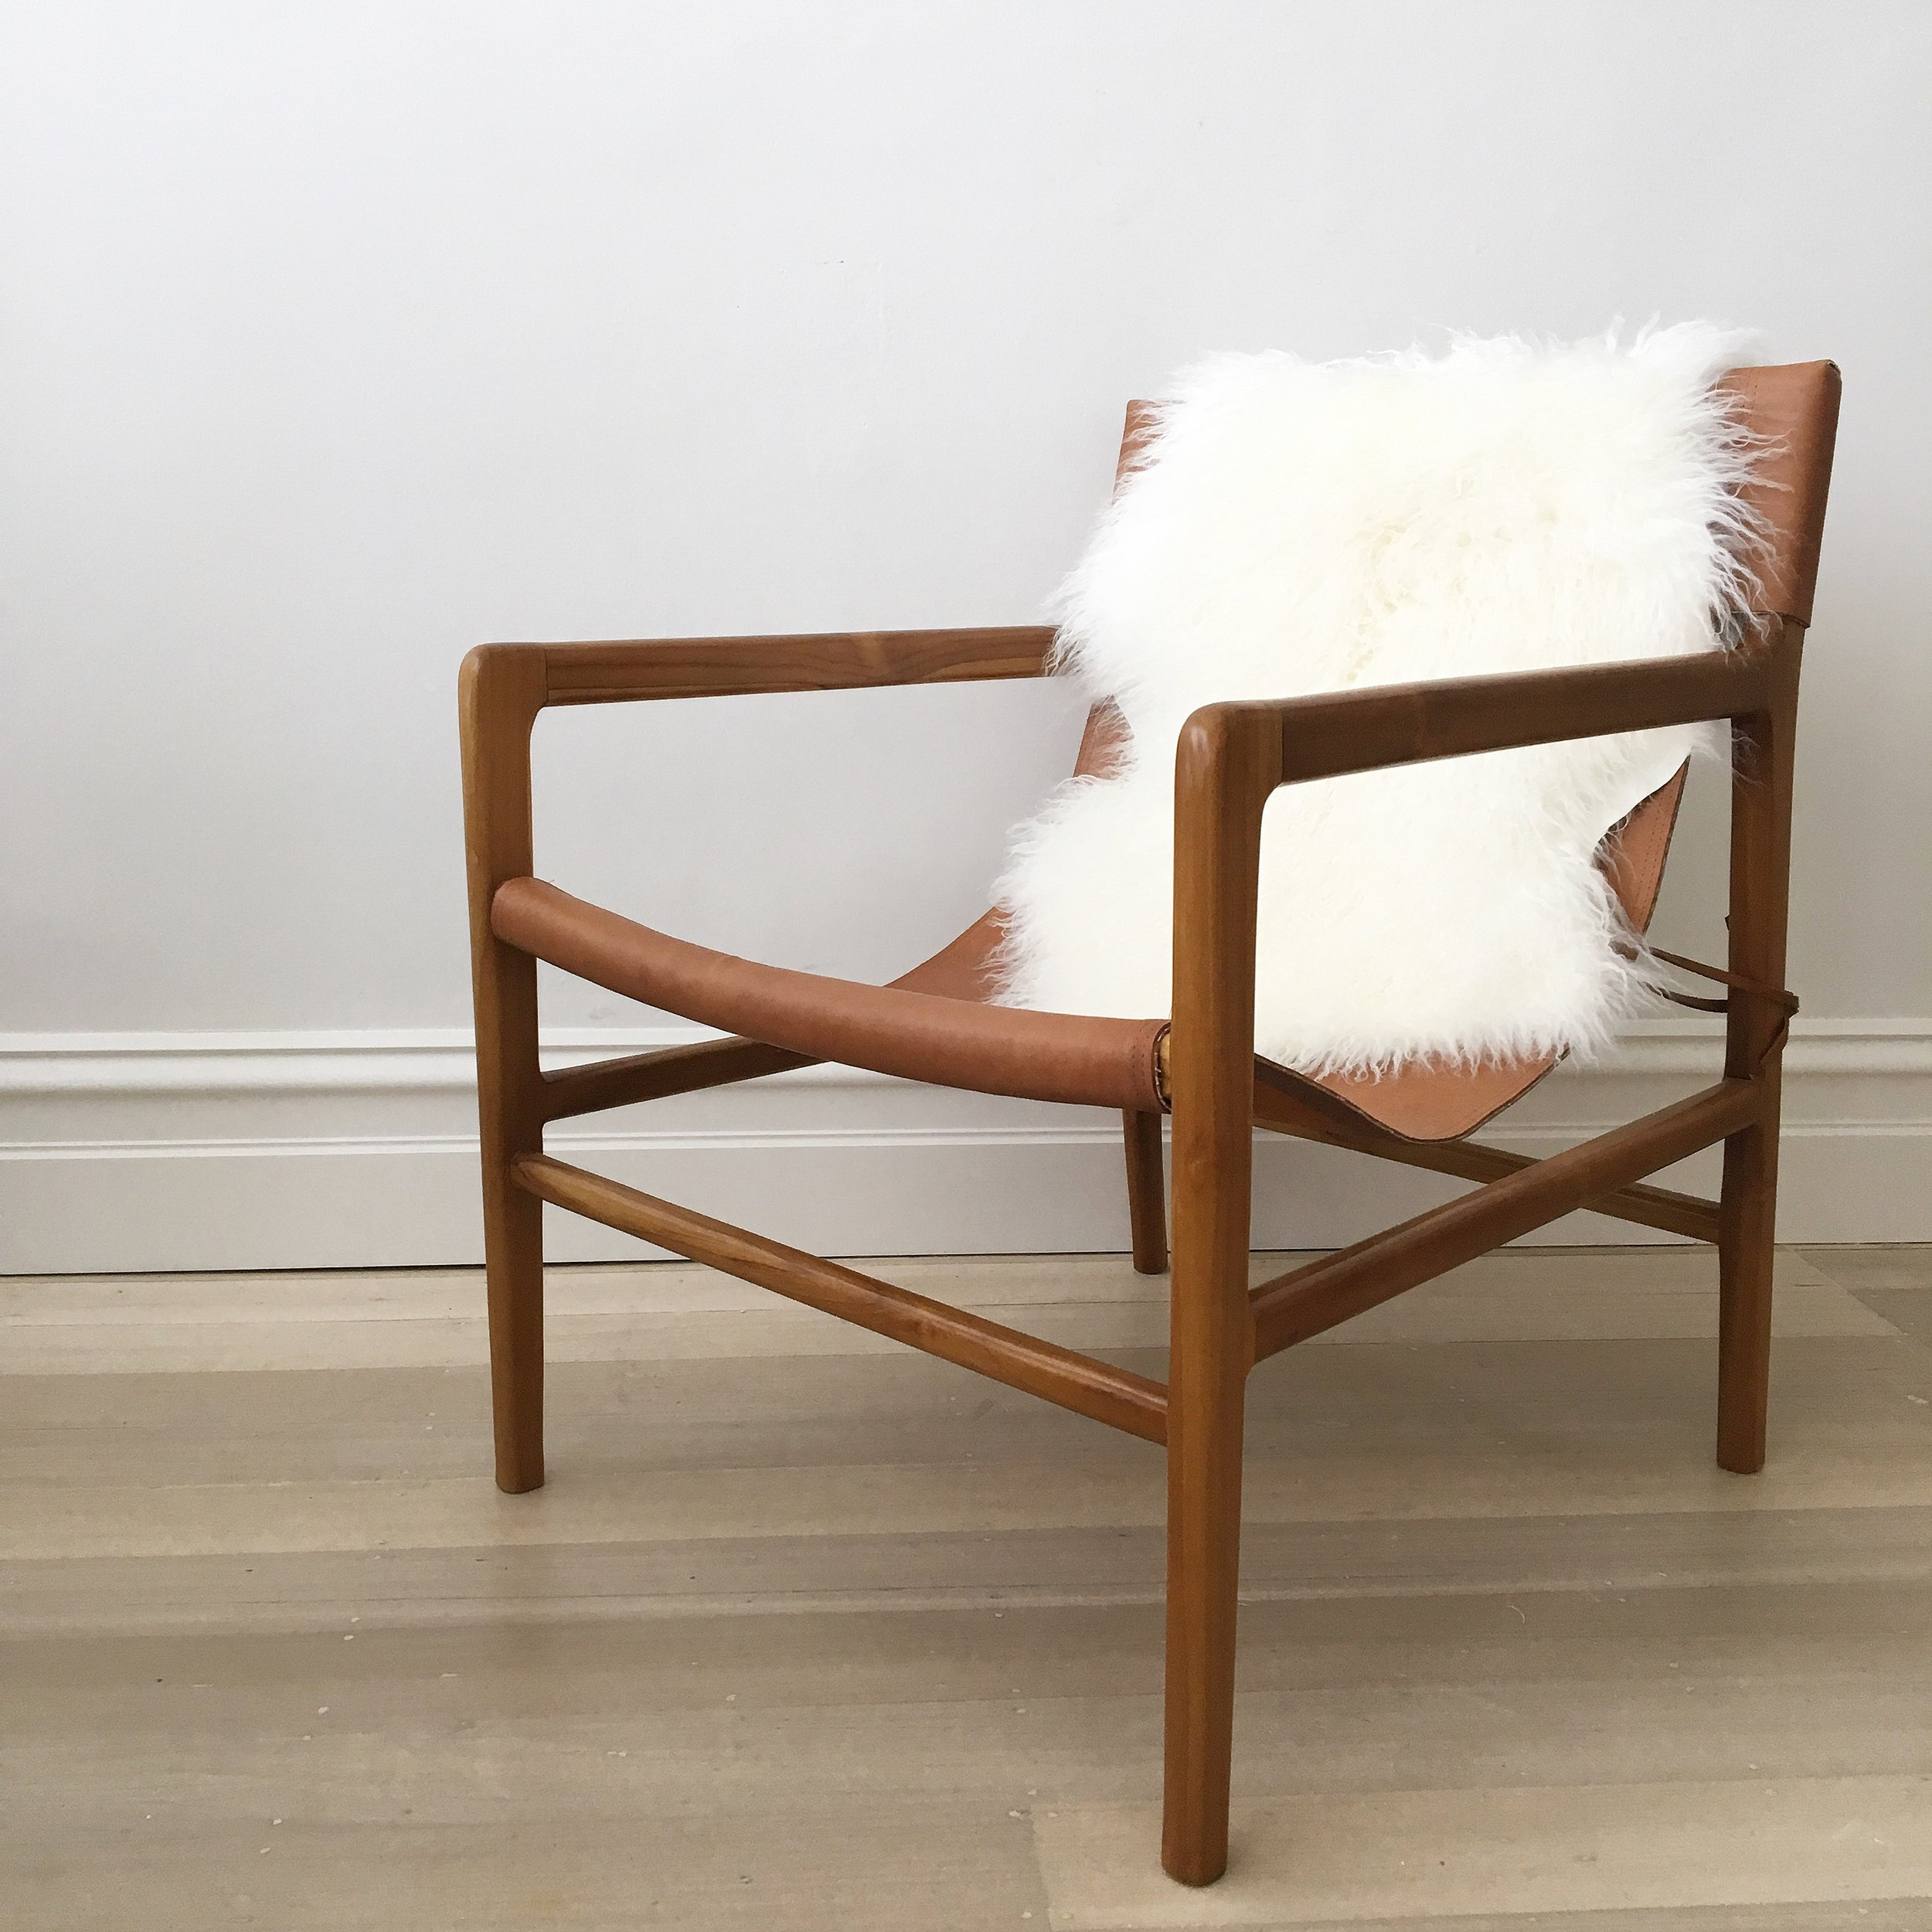 Divine Lear Sling Chair Lear Sling Chair Lear Sling Chair Melbourne Lear Sling Back Chair houzz-03 Leather Sling Chair